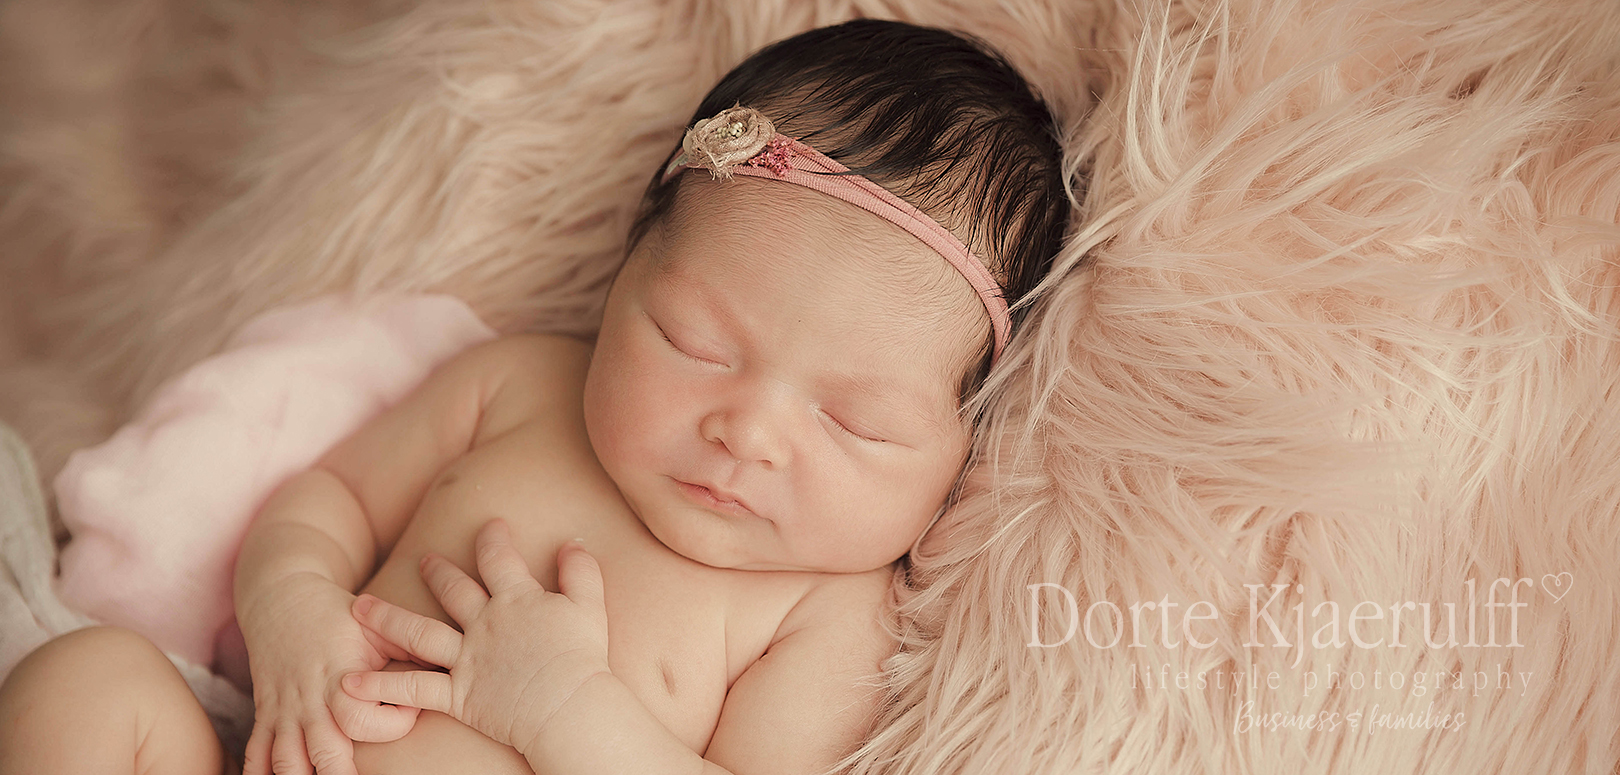 Newborn baby photographer in Market Harborough – featured shoot